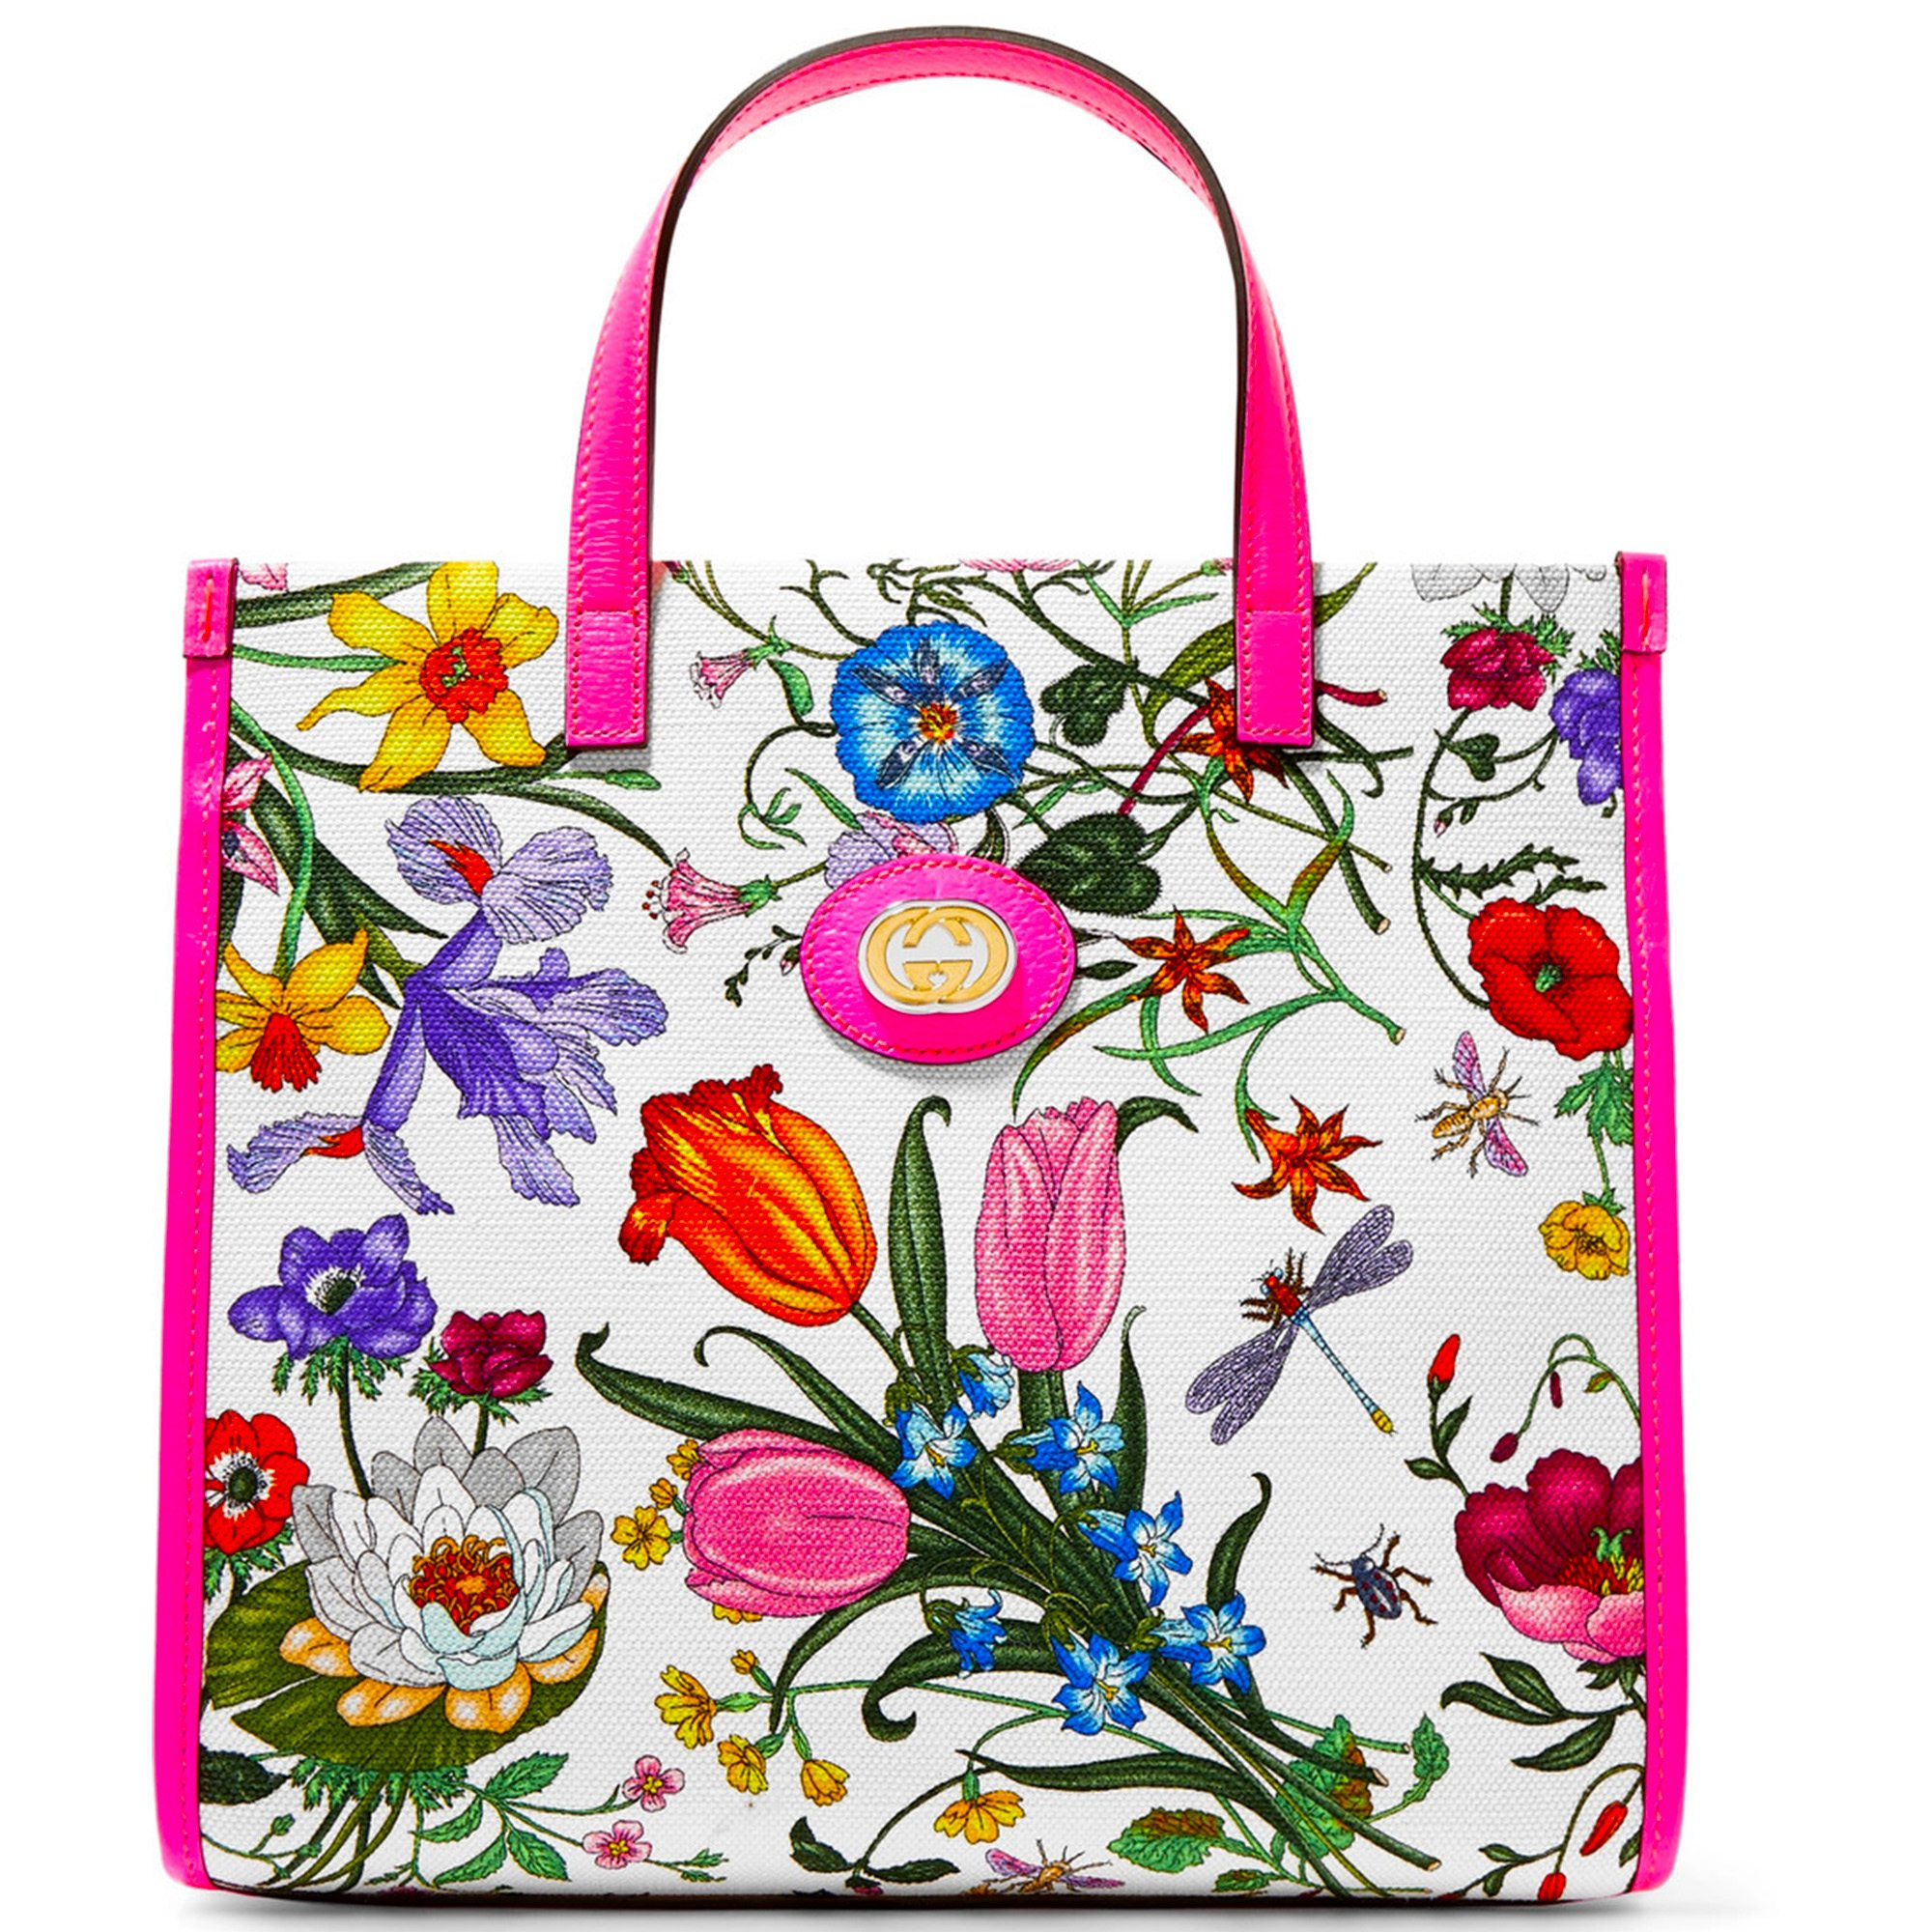 Gucci Medium Flora Tote Bag with Flower Patter